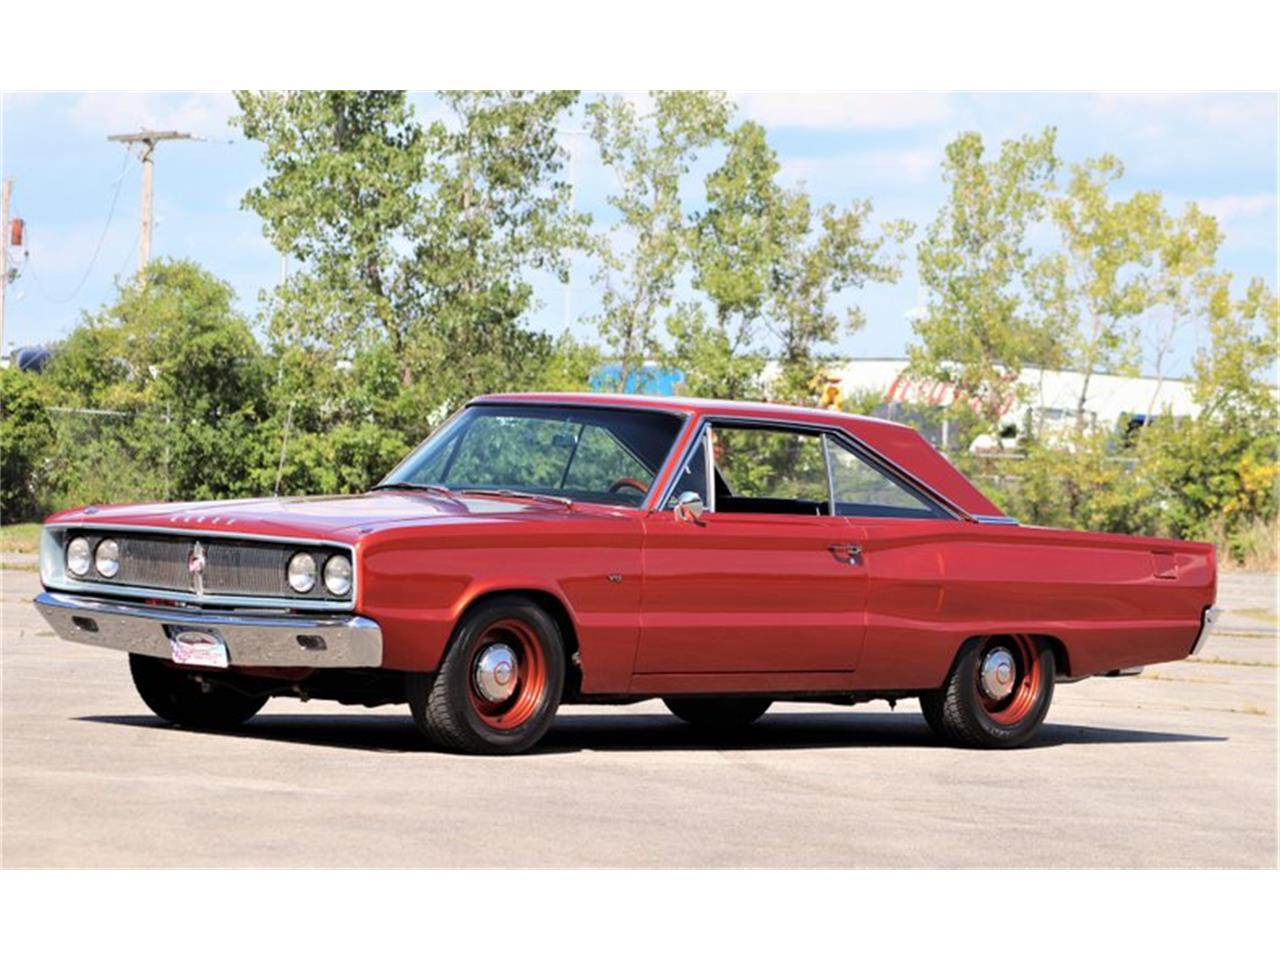 For Sale: 1967 Dodge Coronet in Alsip, Illinois